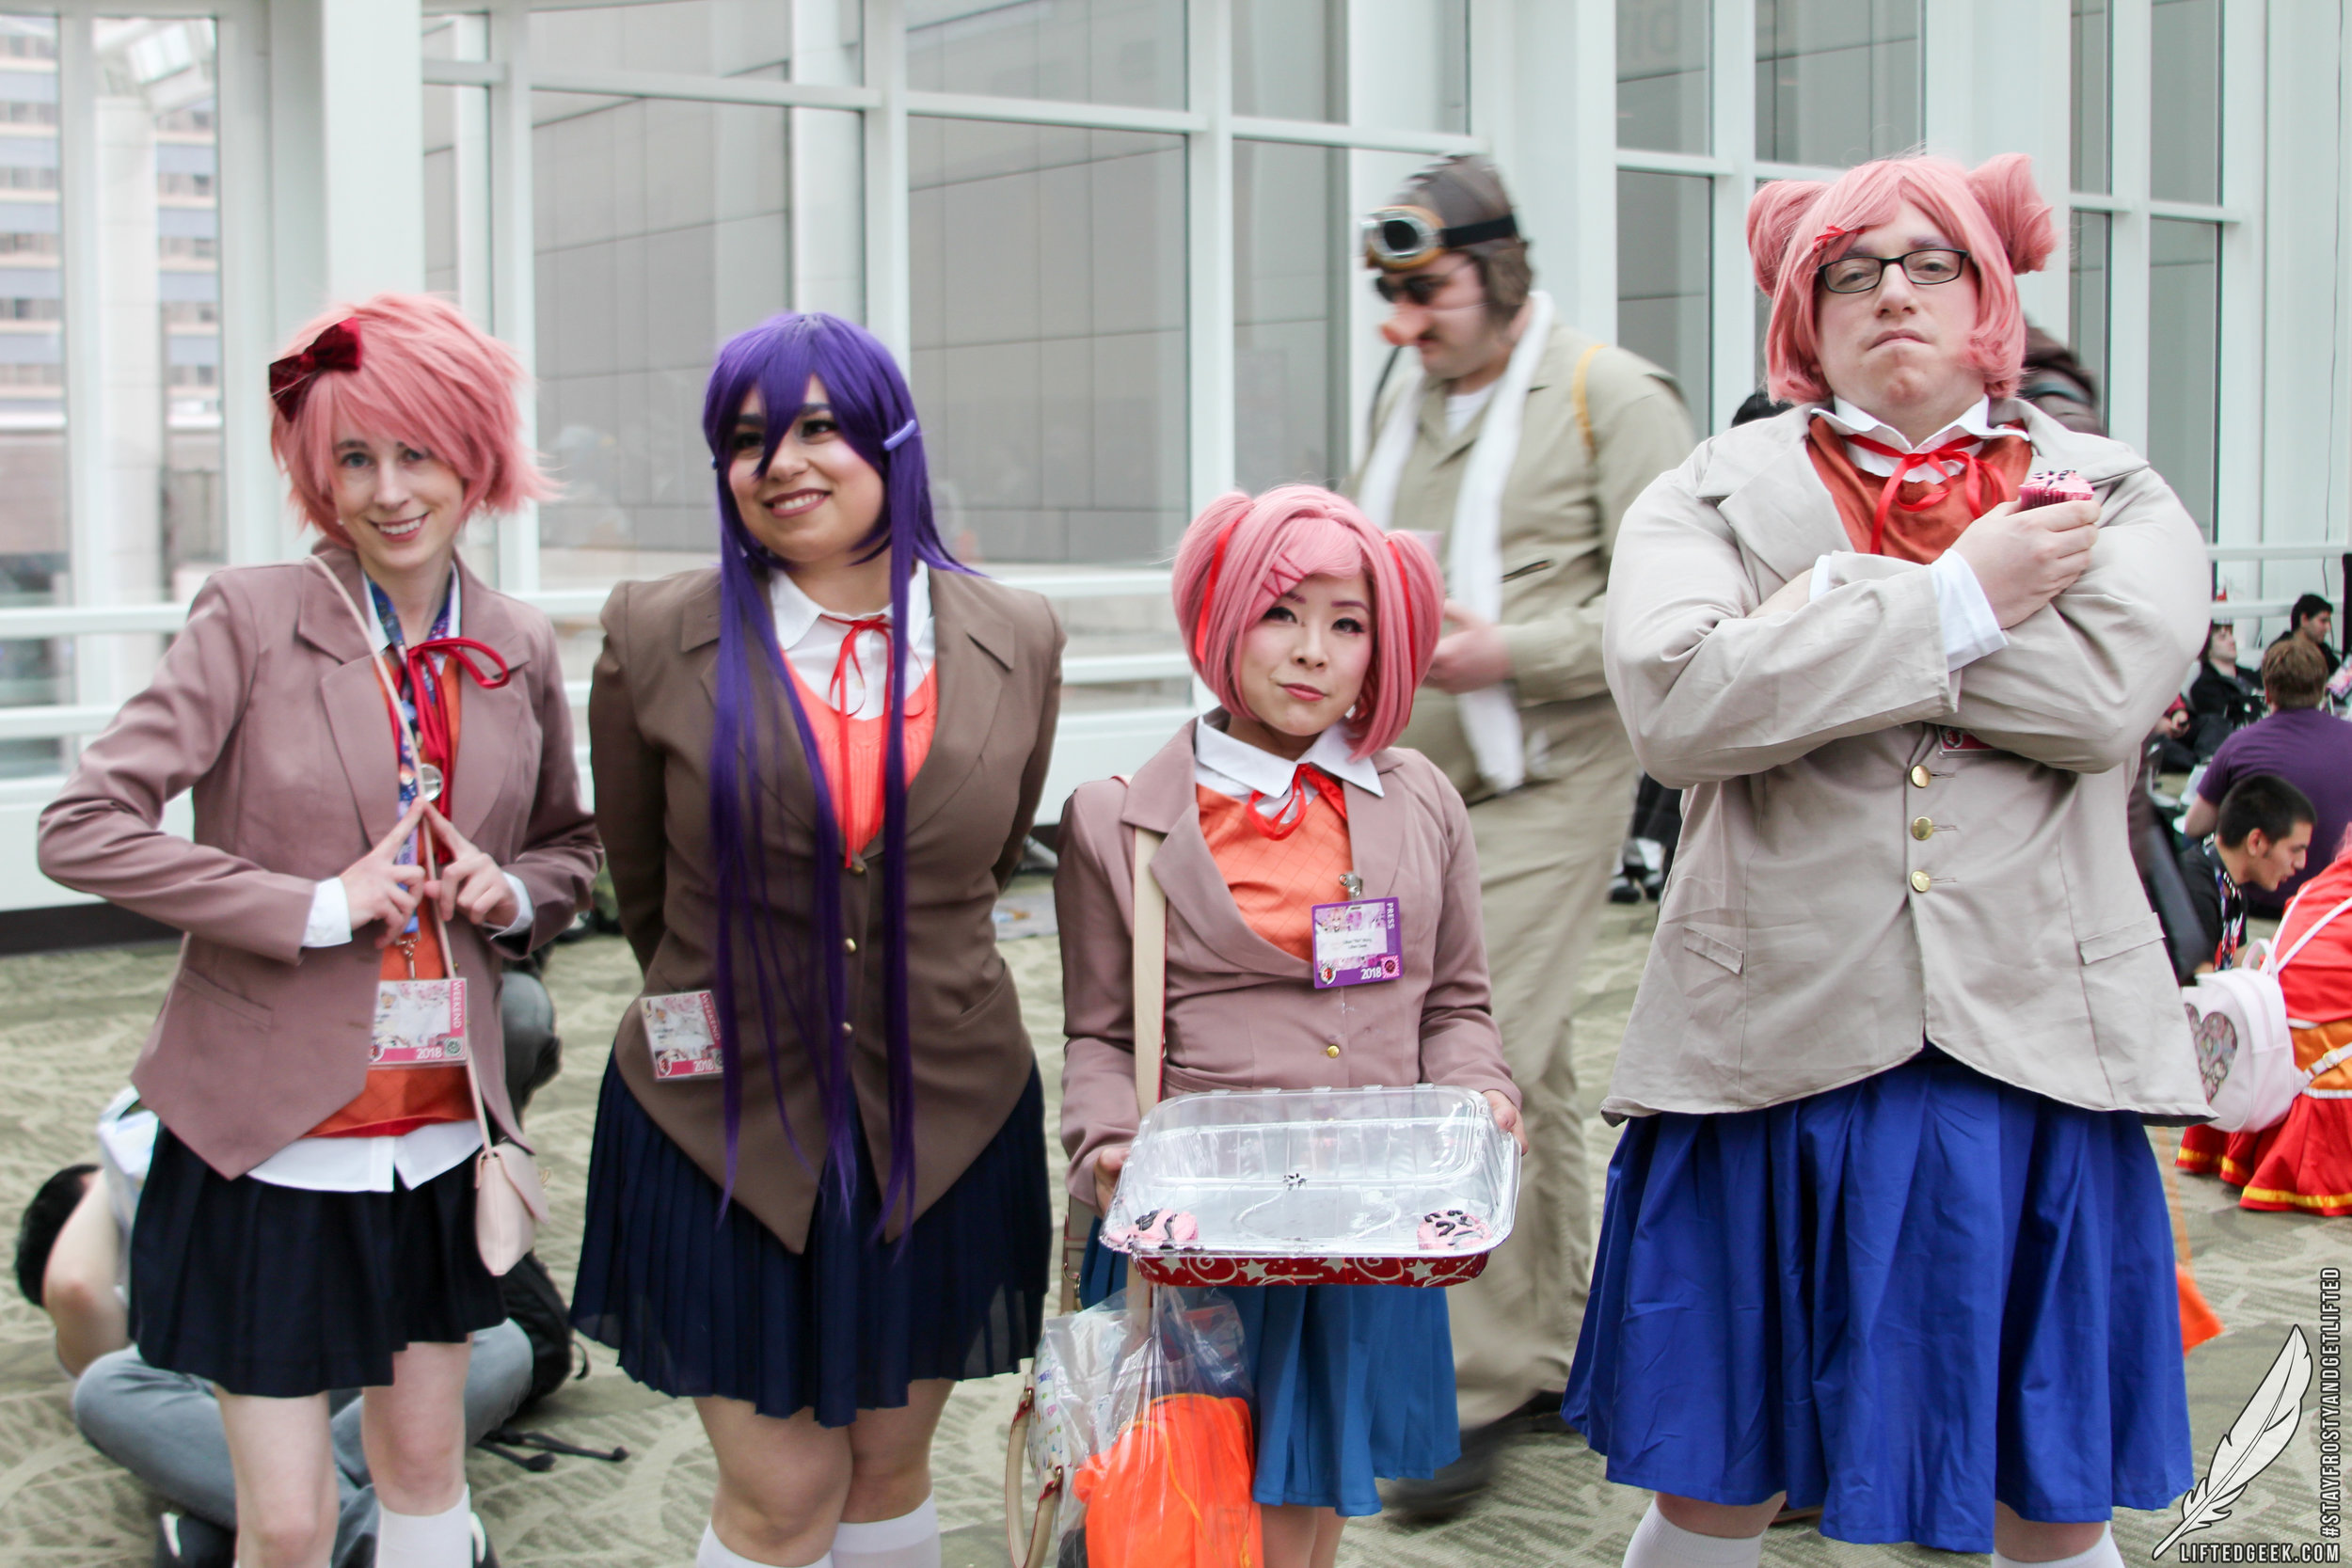 Sakuracon-cosplay-69.jpg